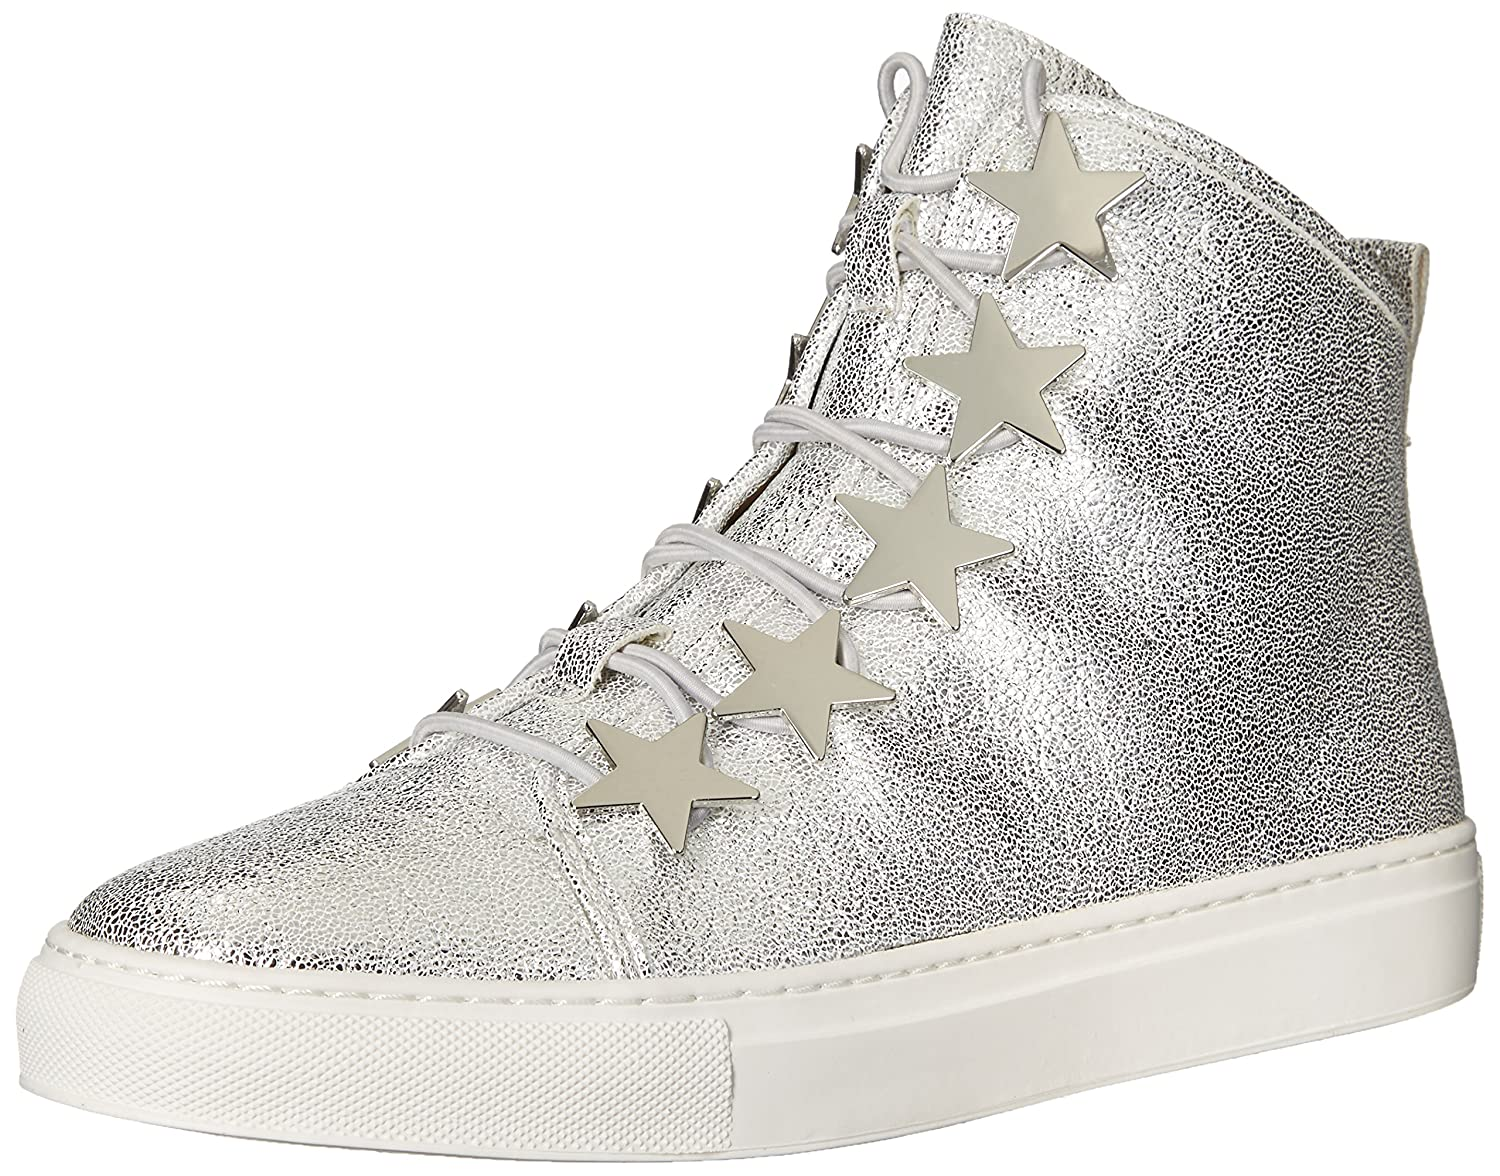 Katy Perry Women's The Astrea Sneaker, White, 8.5 Medium US B06XGLZG6W 11 B(M) US|Silver